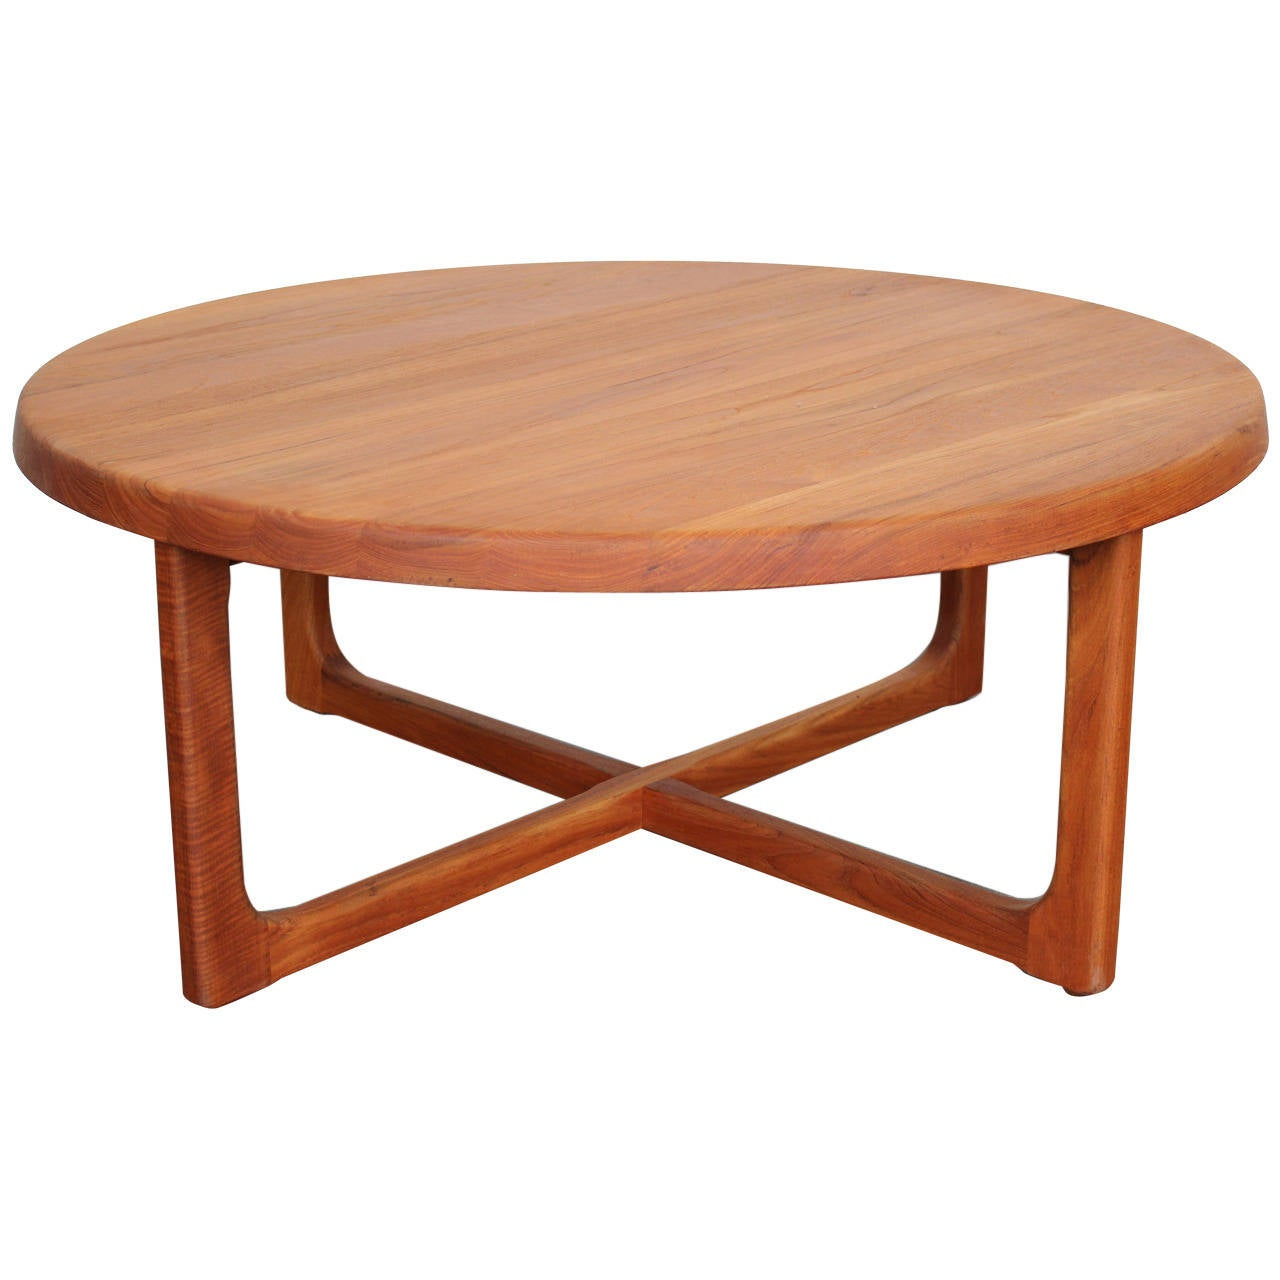 Mid century large round solid teak coffee table at 1stdibs Round espresso coffee table